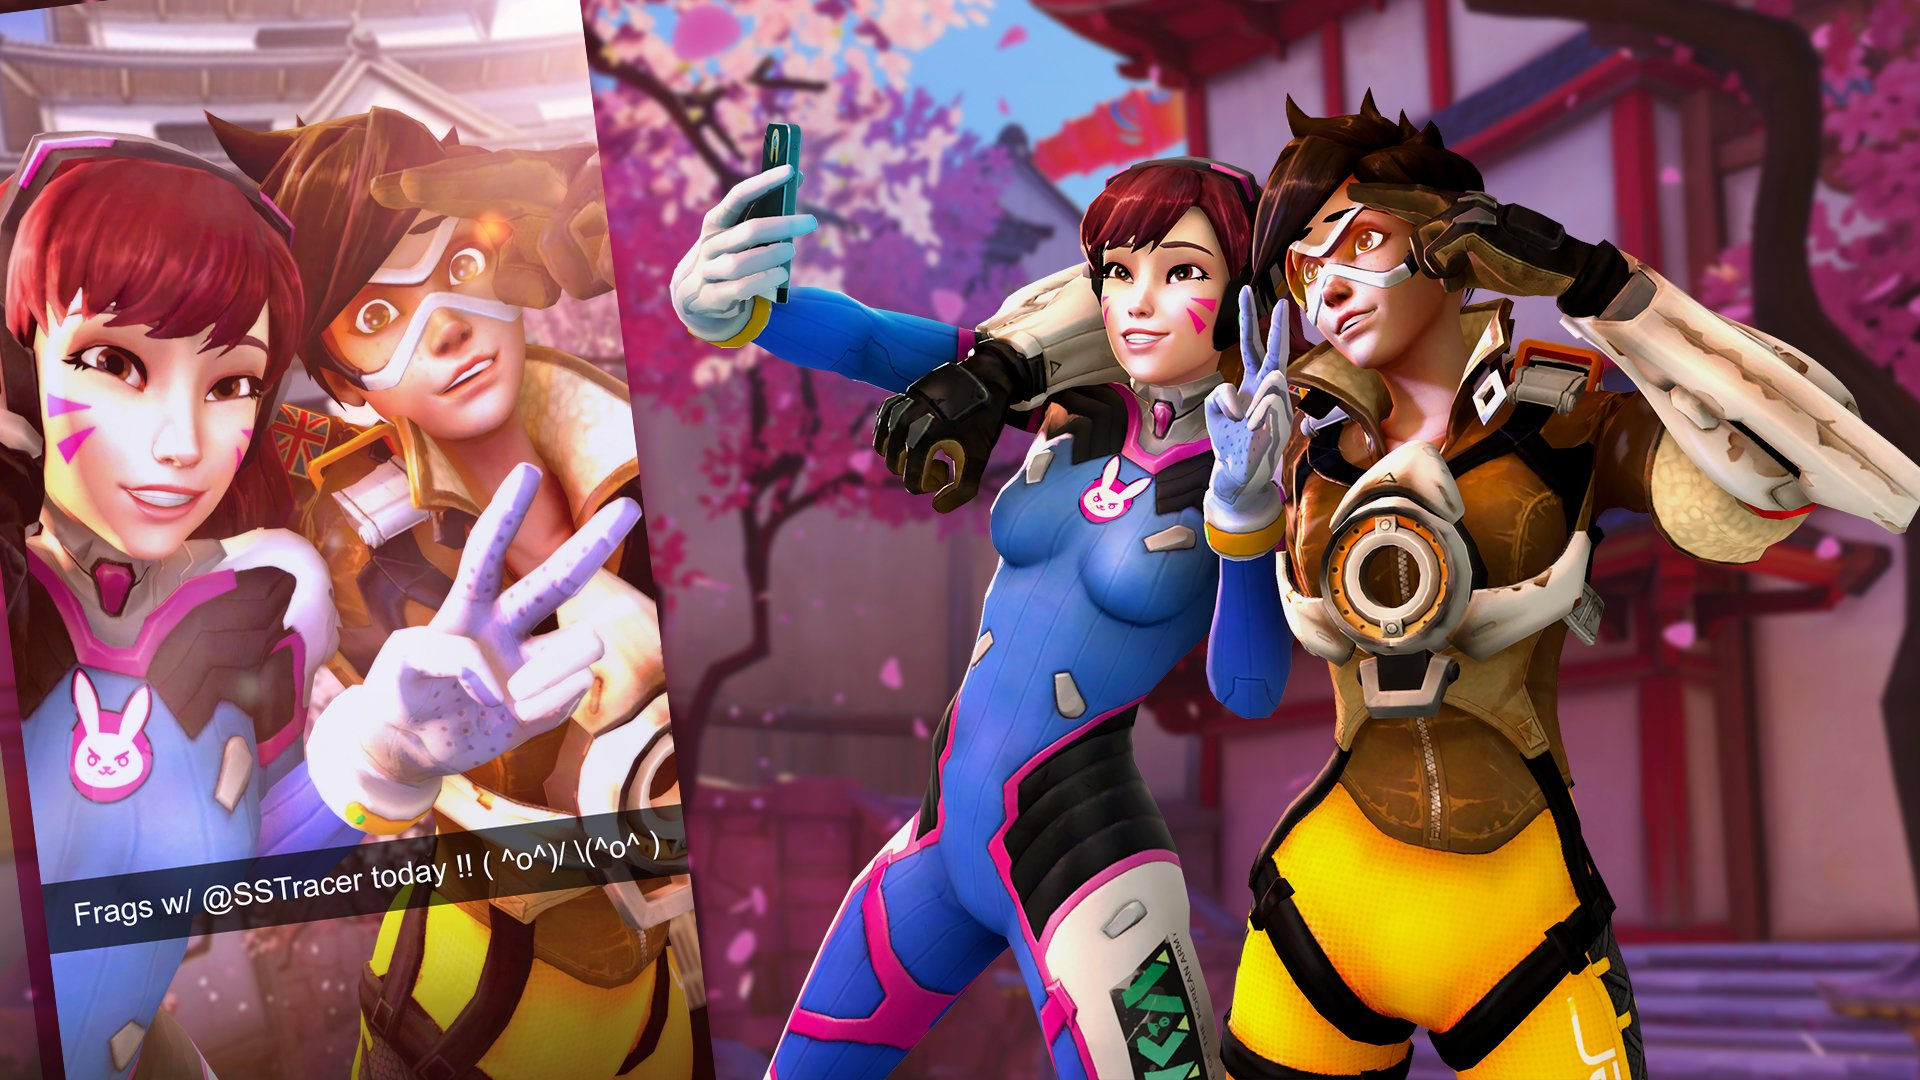 Video Game - Overwatch  Tracer (Overwatch) D.Va (Overwatch) Wallpaper